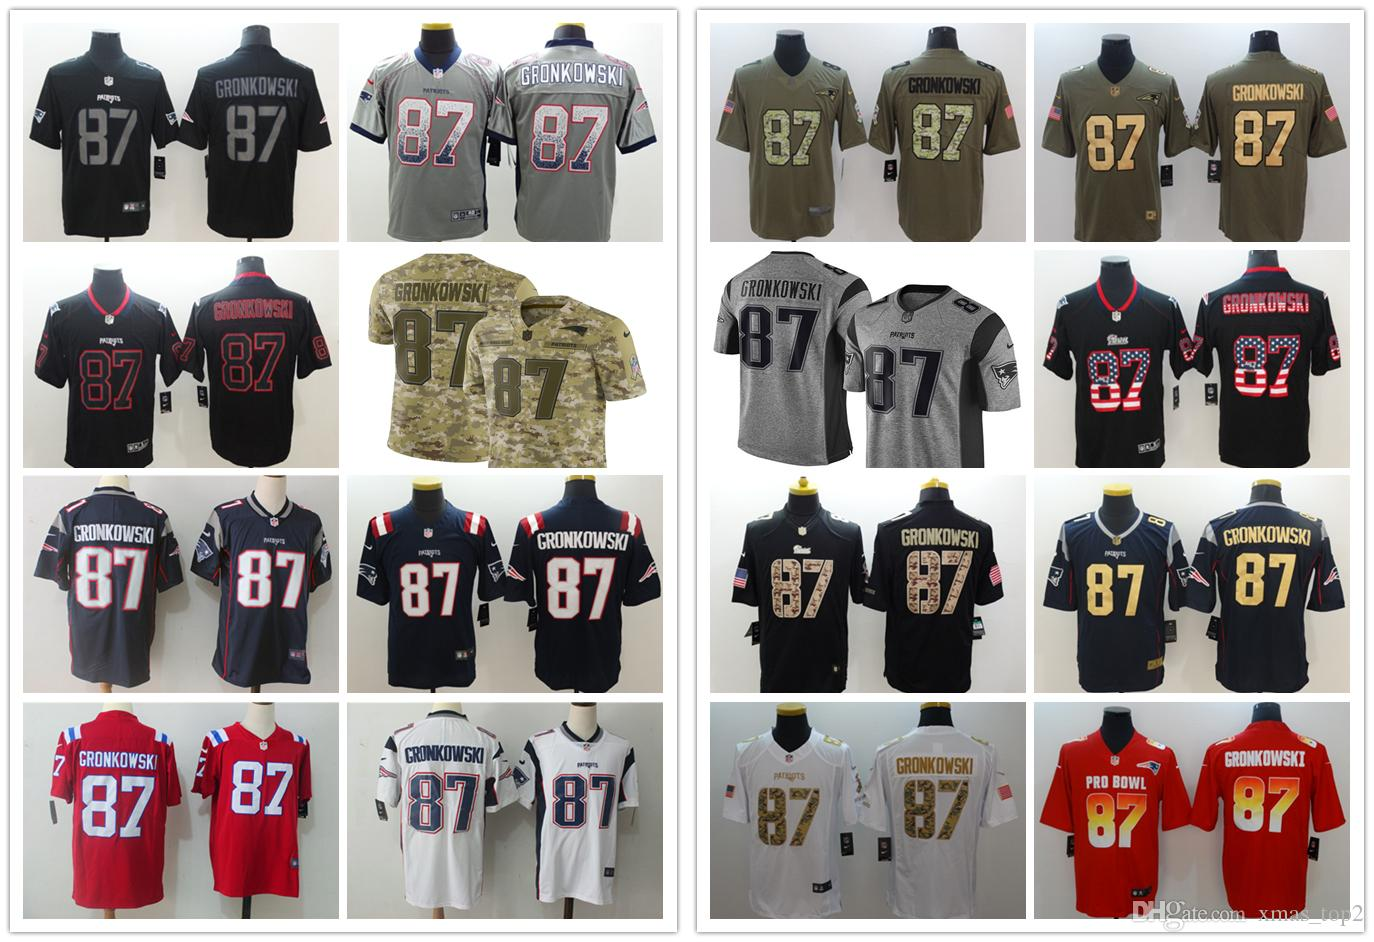 2019 New Mens 87 Rob Gronkowski Camo Jersey Patriots Football Jersey  Stitched Embroidery Patriots Rob Gronkowski Color Rush Football Shirt Shirt  S Shirts ... e57af3a5e